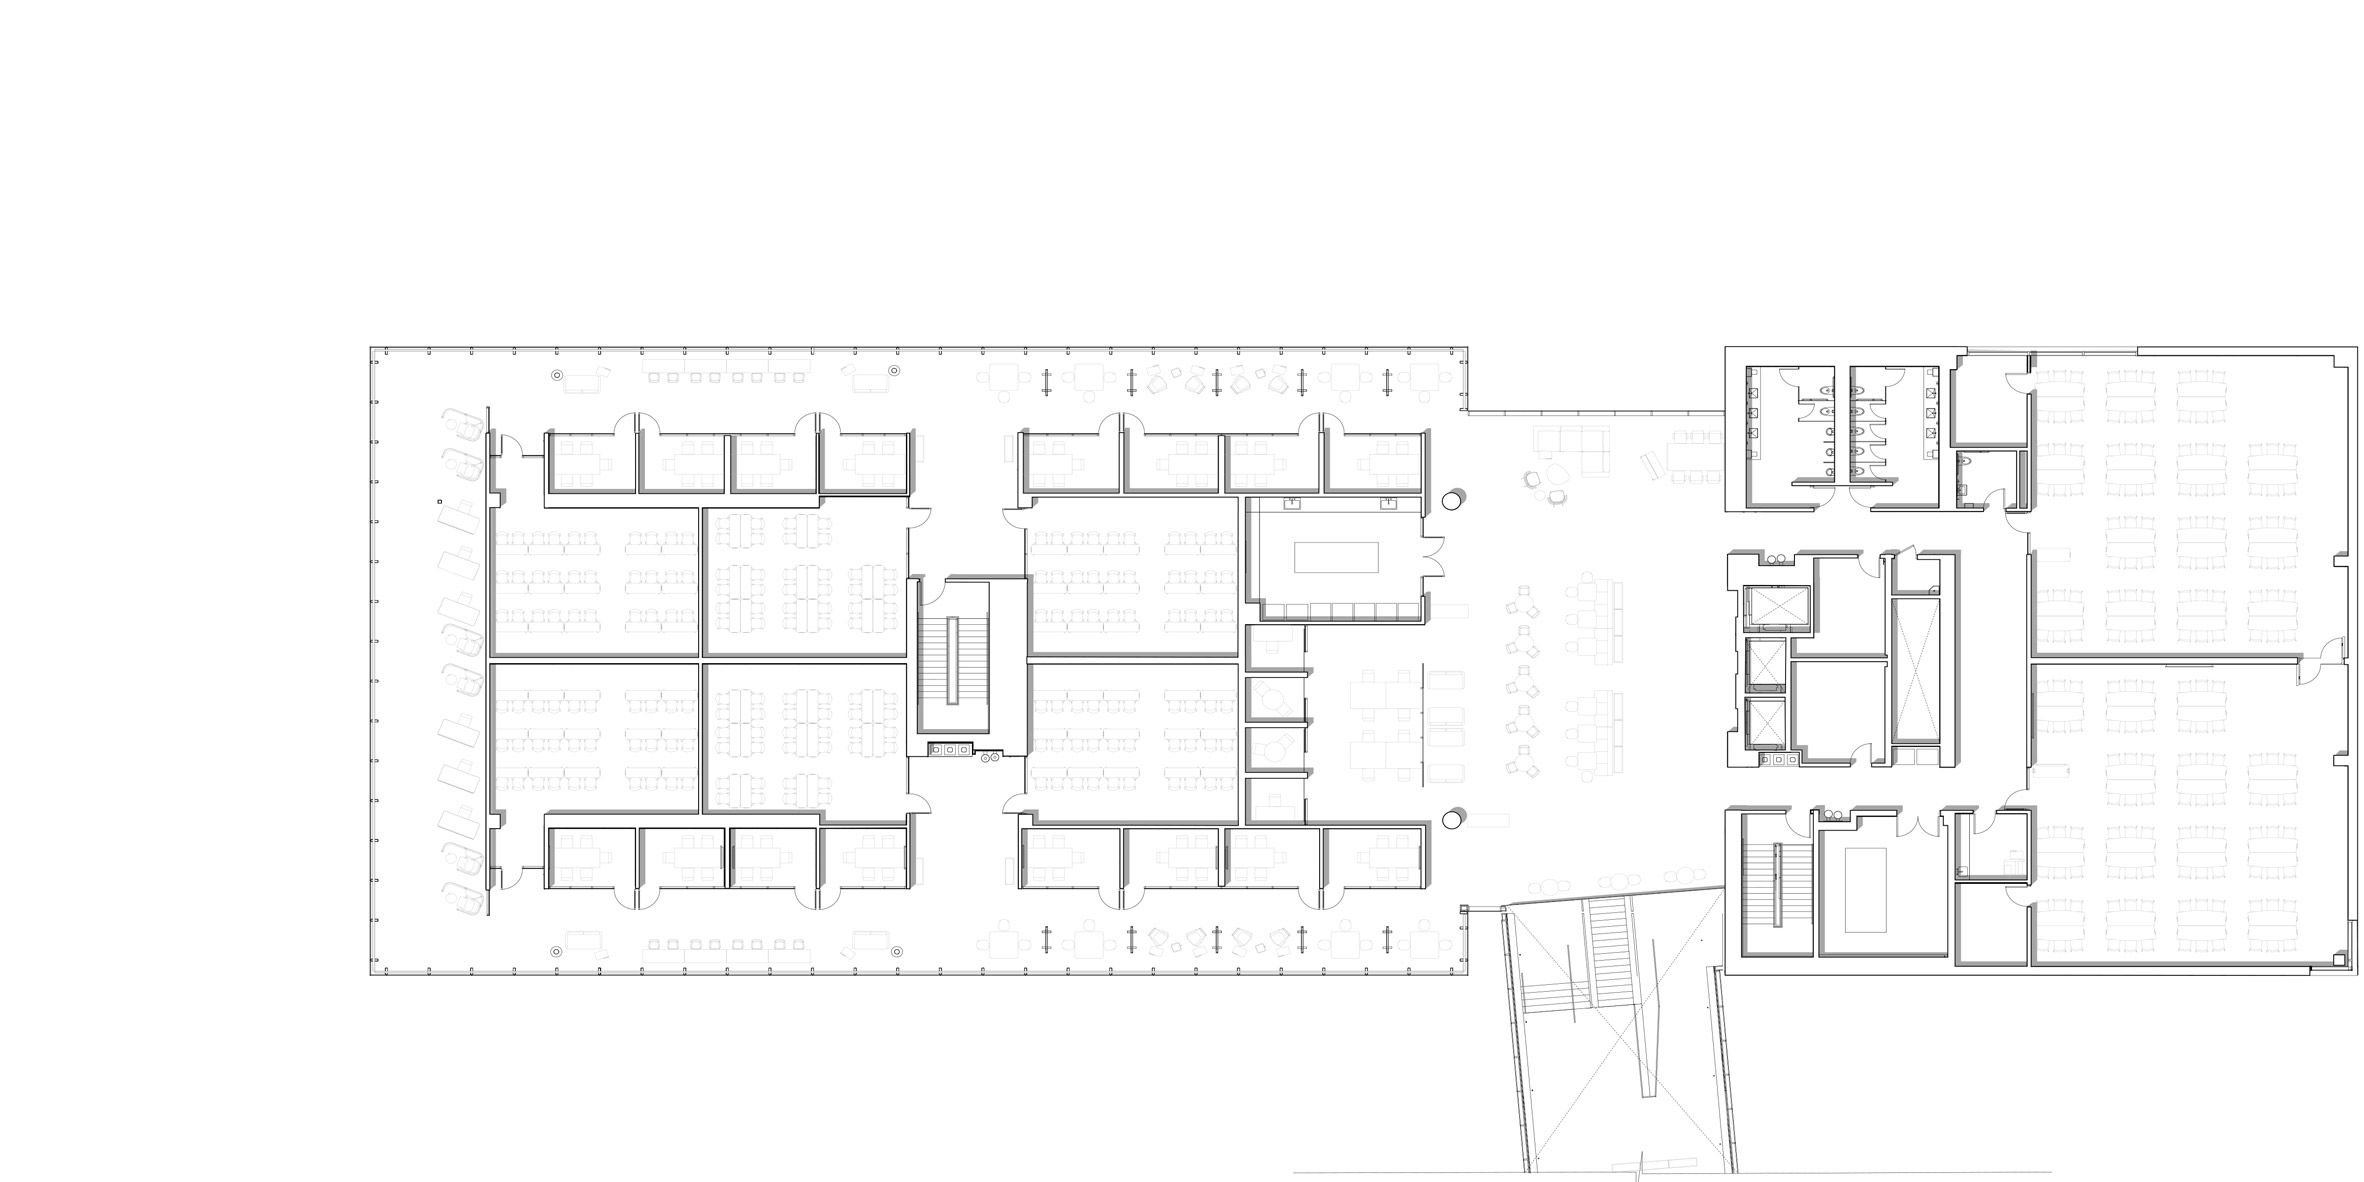 medical-center-university-of-kansas-co-architects-architecture-kansas-city-usa_dezeen_2364_second-level-floor-plan.jpg